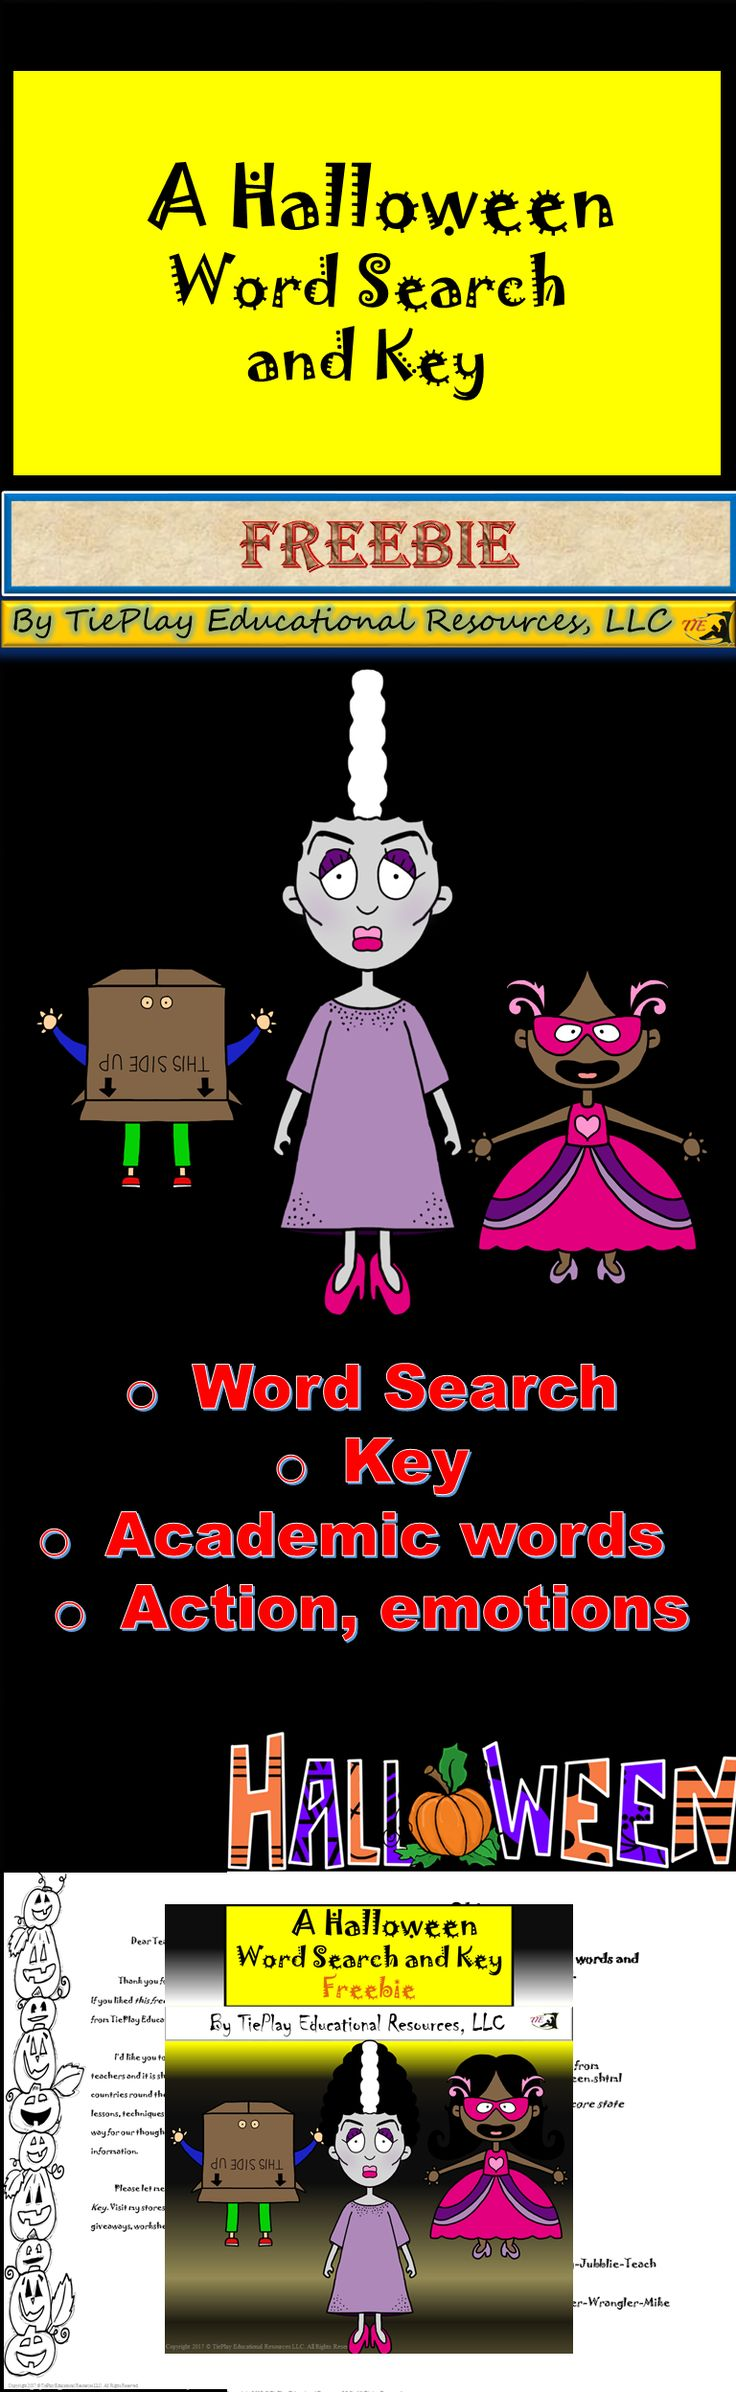 FREE: A Halloween Word Search allows students to find key words specific to the holiday. This word search is targeted for upper elementary and middle school students.  Happy Halloween!